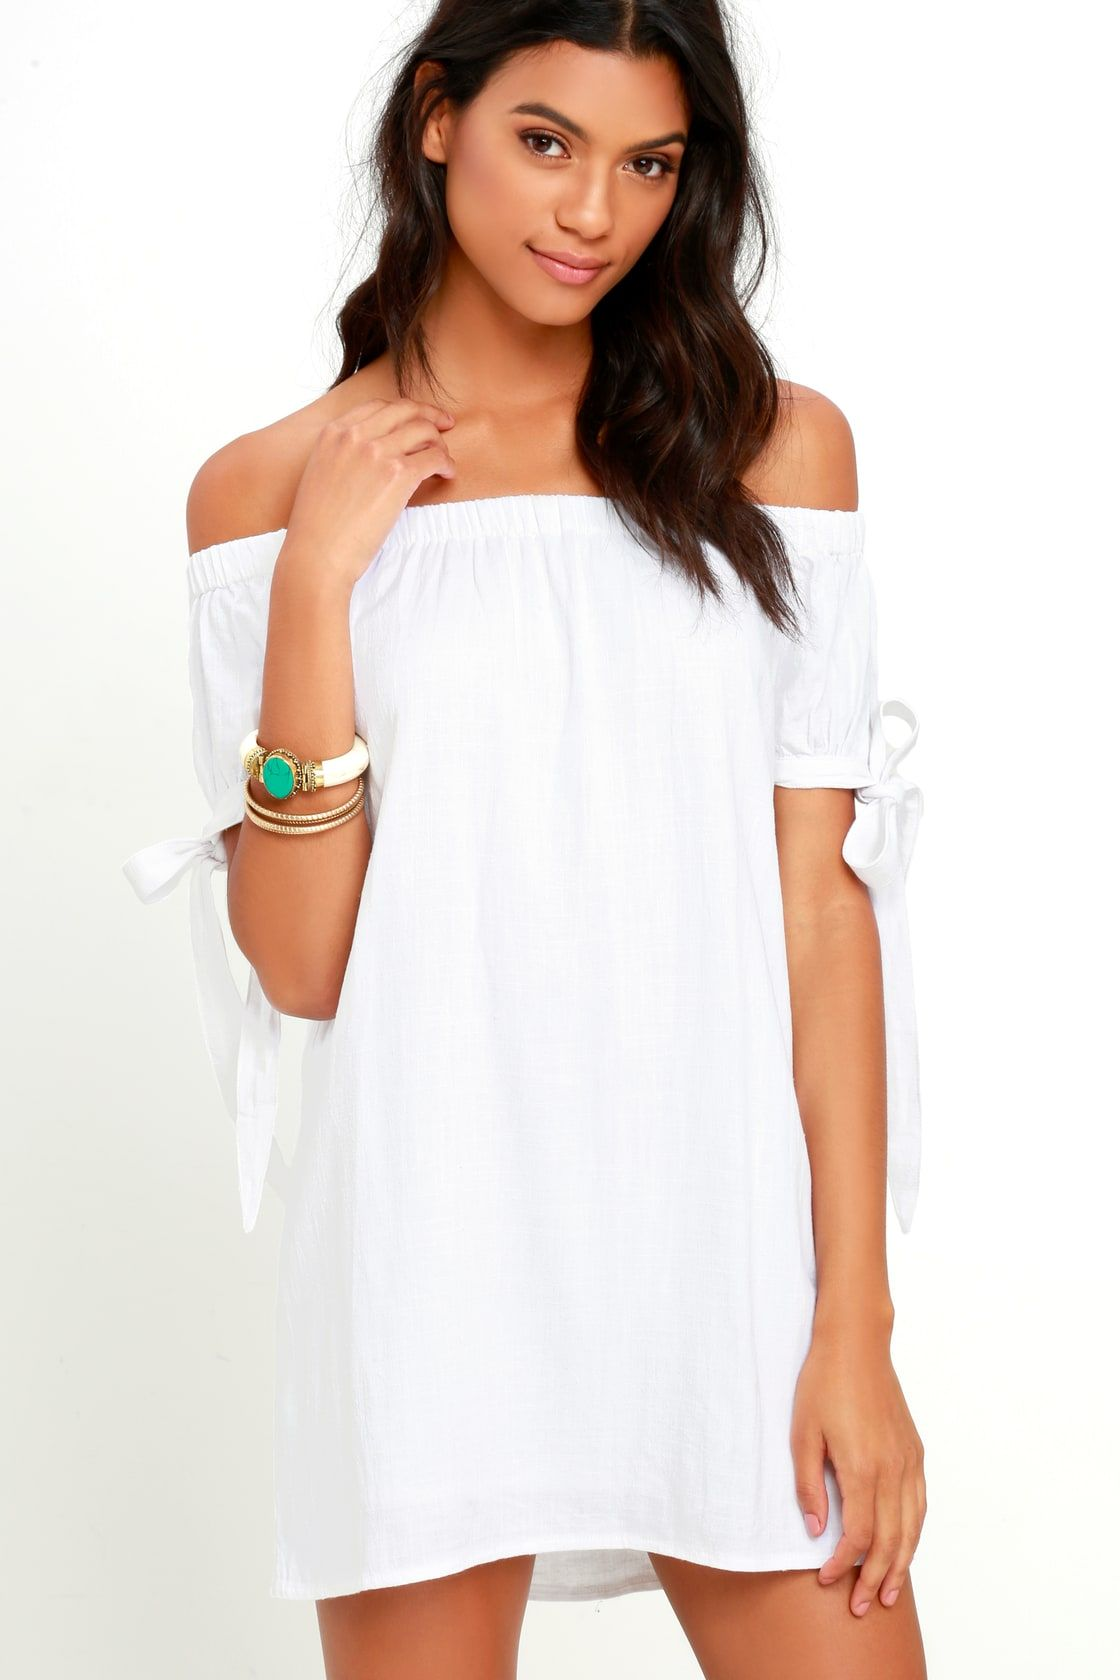 d65fc9bf77446 Al Fresco Evenings Ivory Off-the-Shoulder Dress in 2019